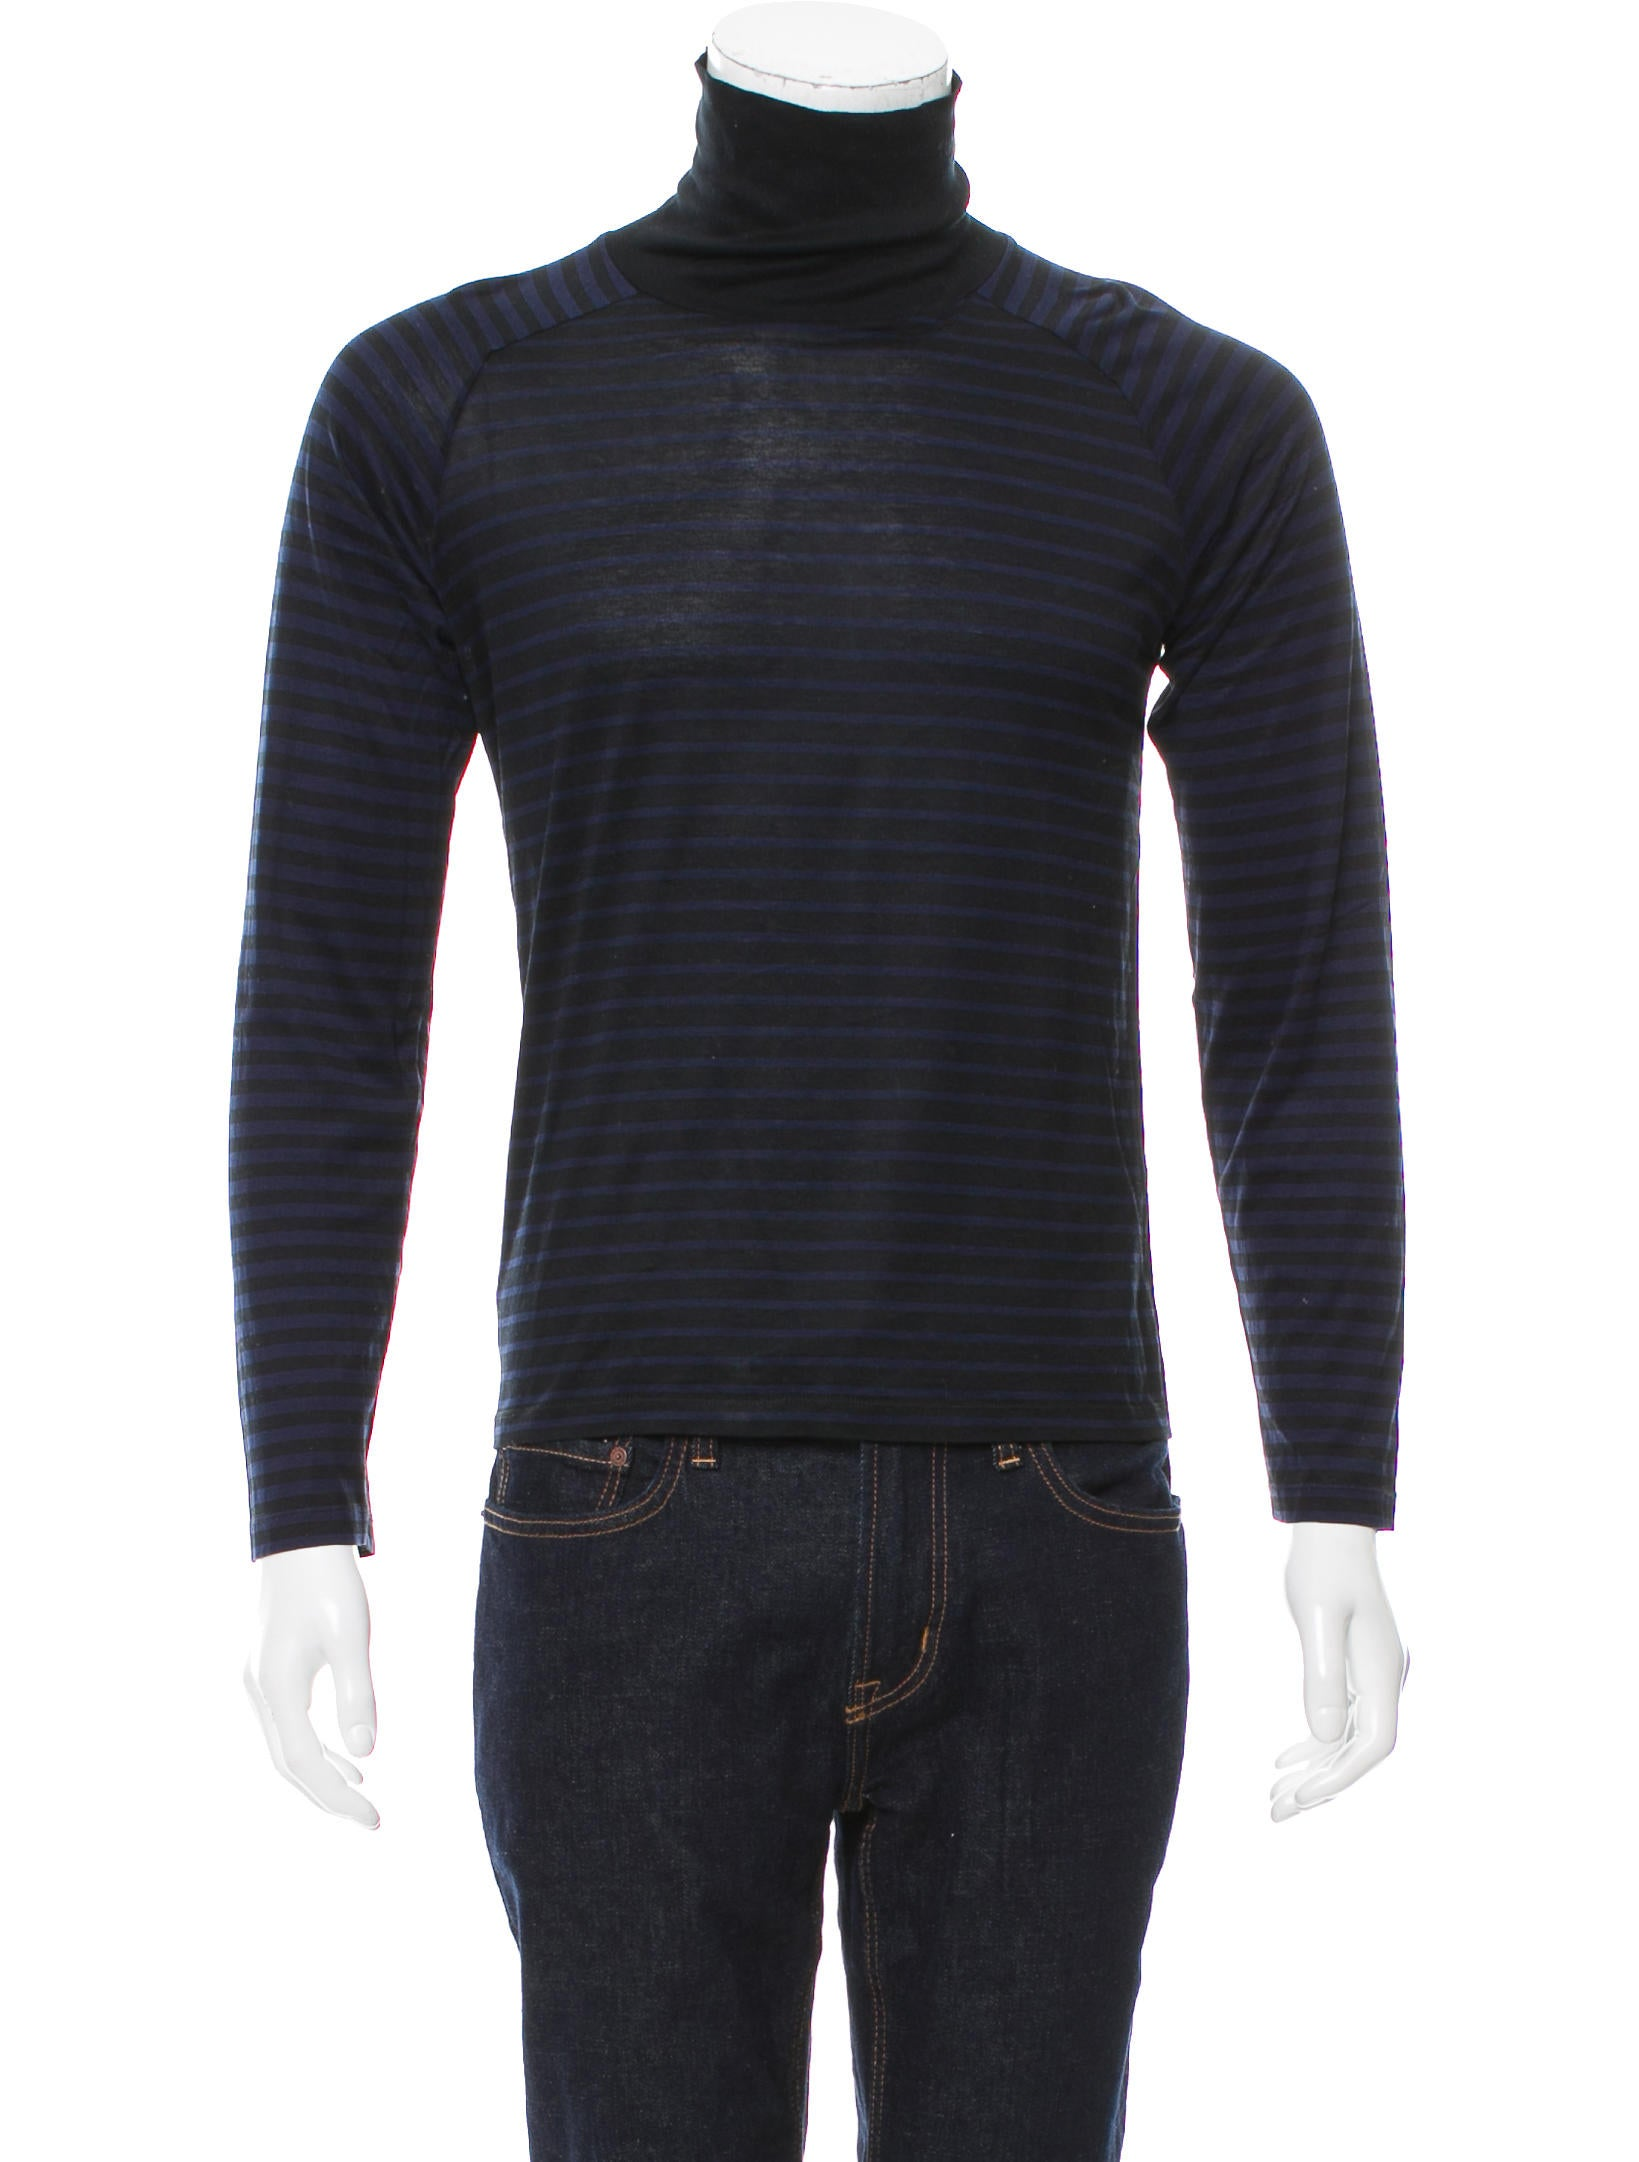 Balenciaga Striped Turtleneck Sweater - Clothing - BAL52400 | The ...